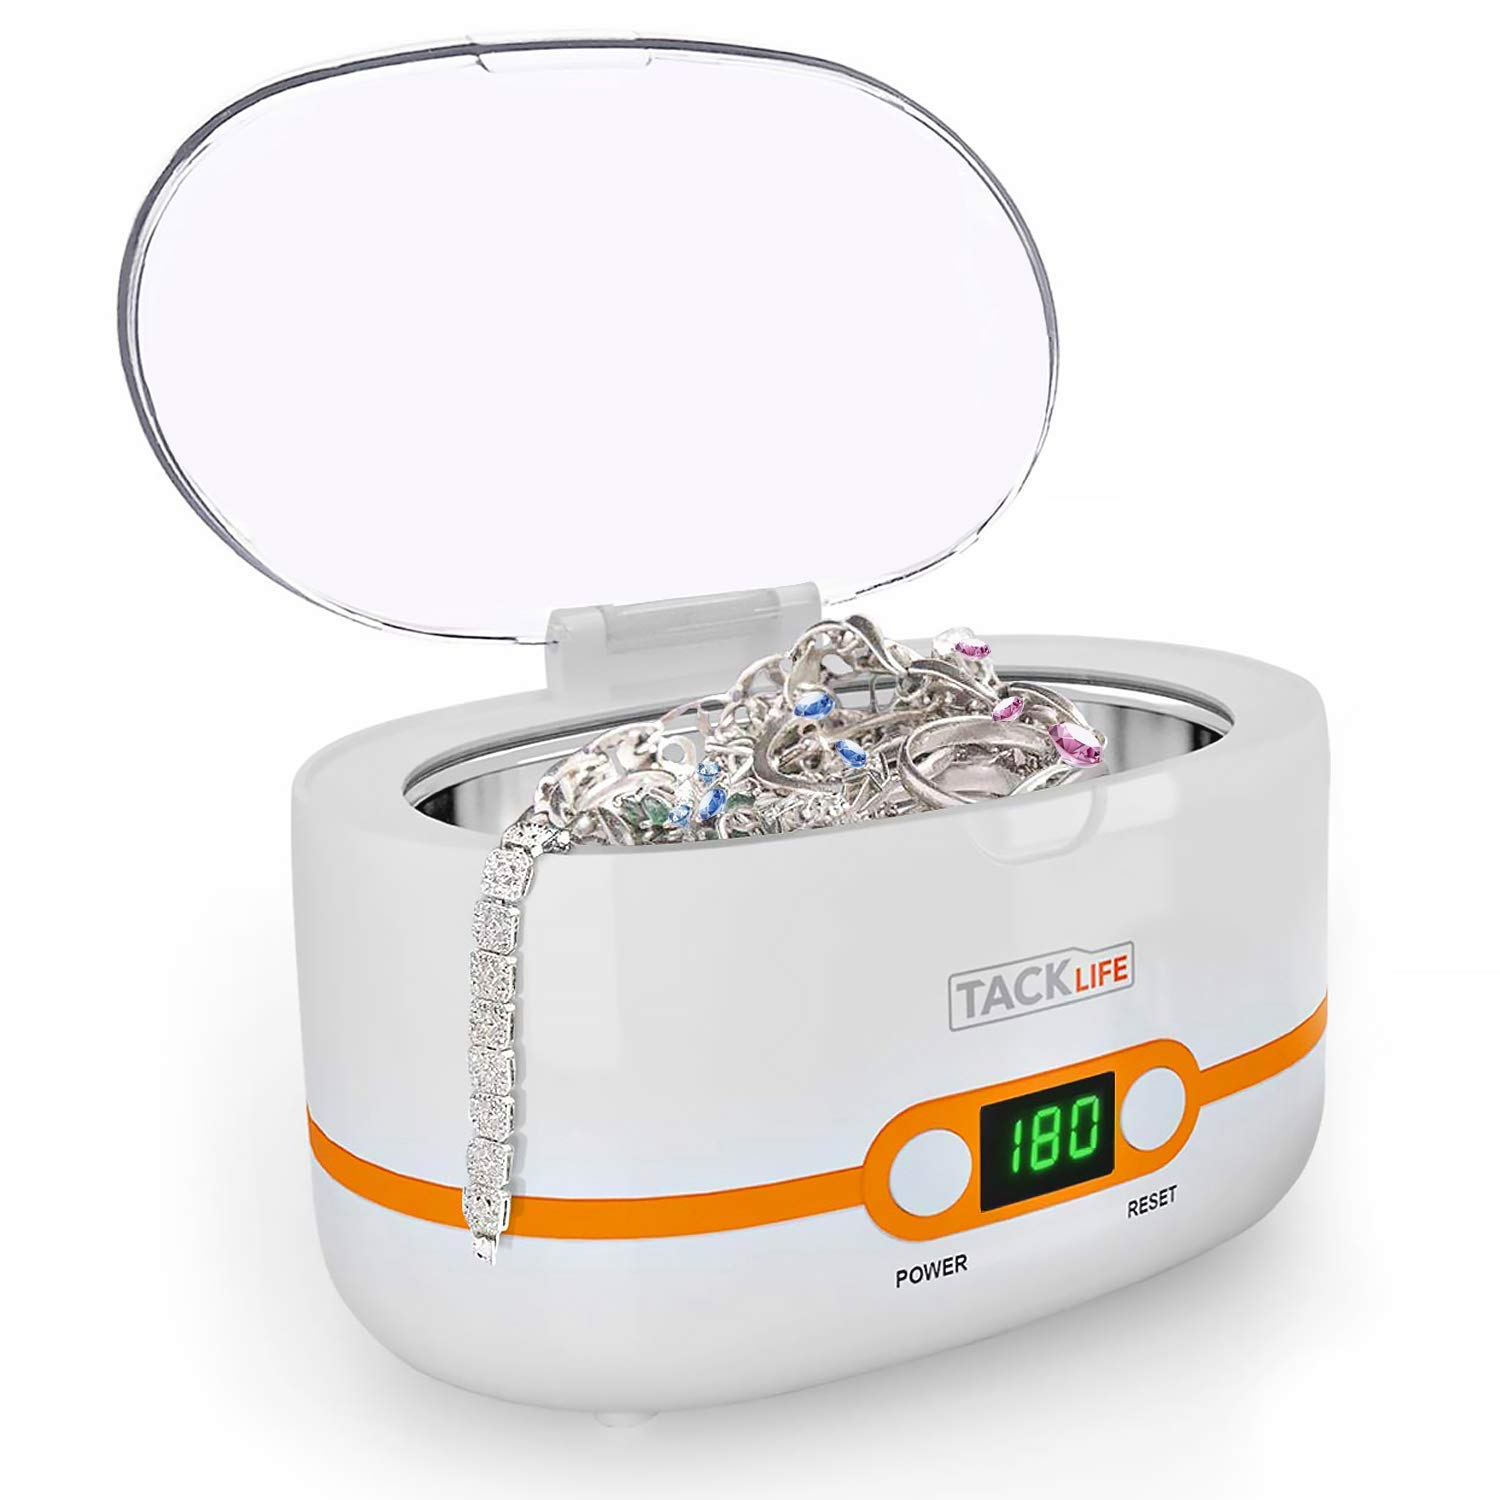 Ultrasonic Cleaner, Compact Professional Ultrasonic Jewelry Cleaner 20 Ounces(600ML) with Five Digital Timer, Watch Holder, SUS Tank for Cleaning Eyeglasses, Watches, Dentures - MUC02 by TACKLIFE